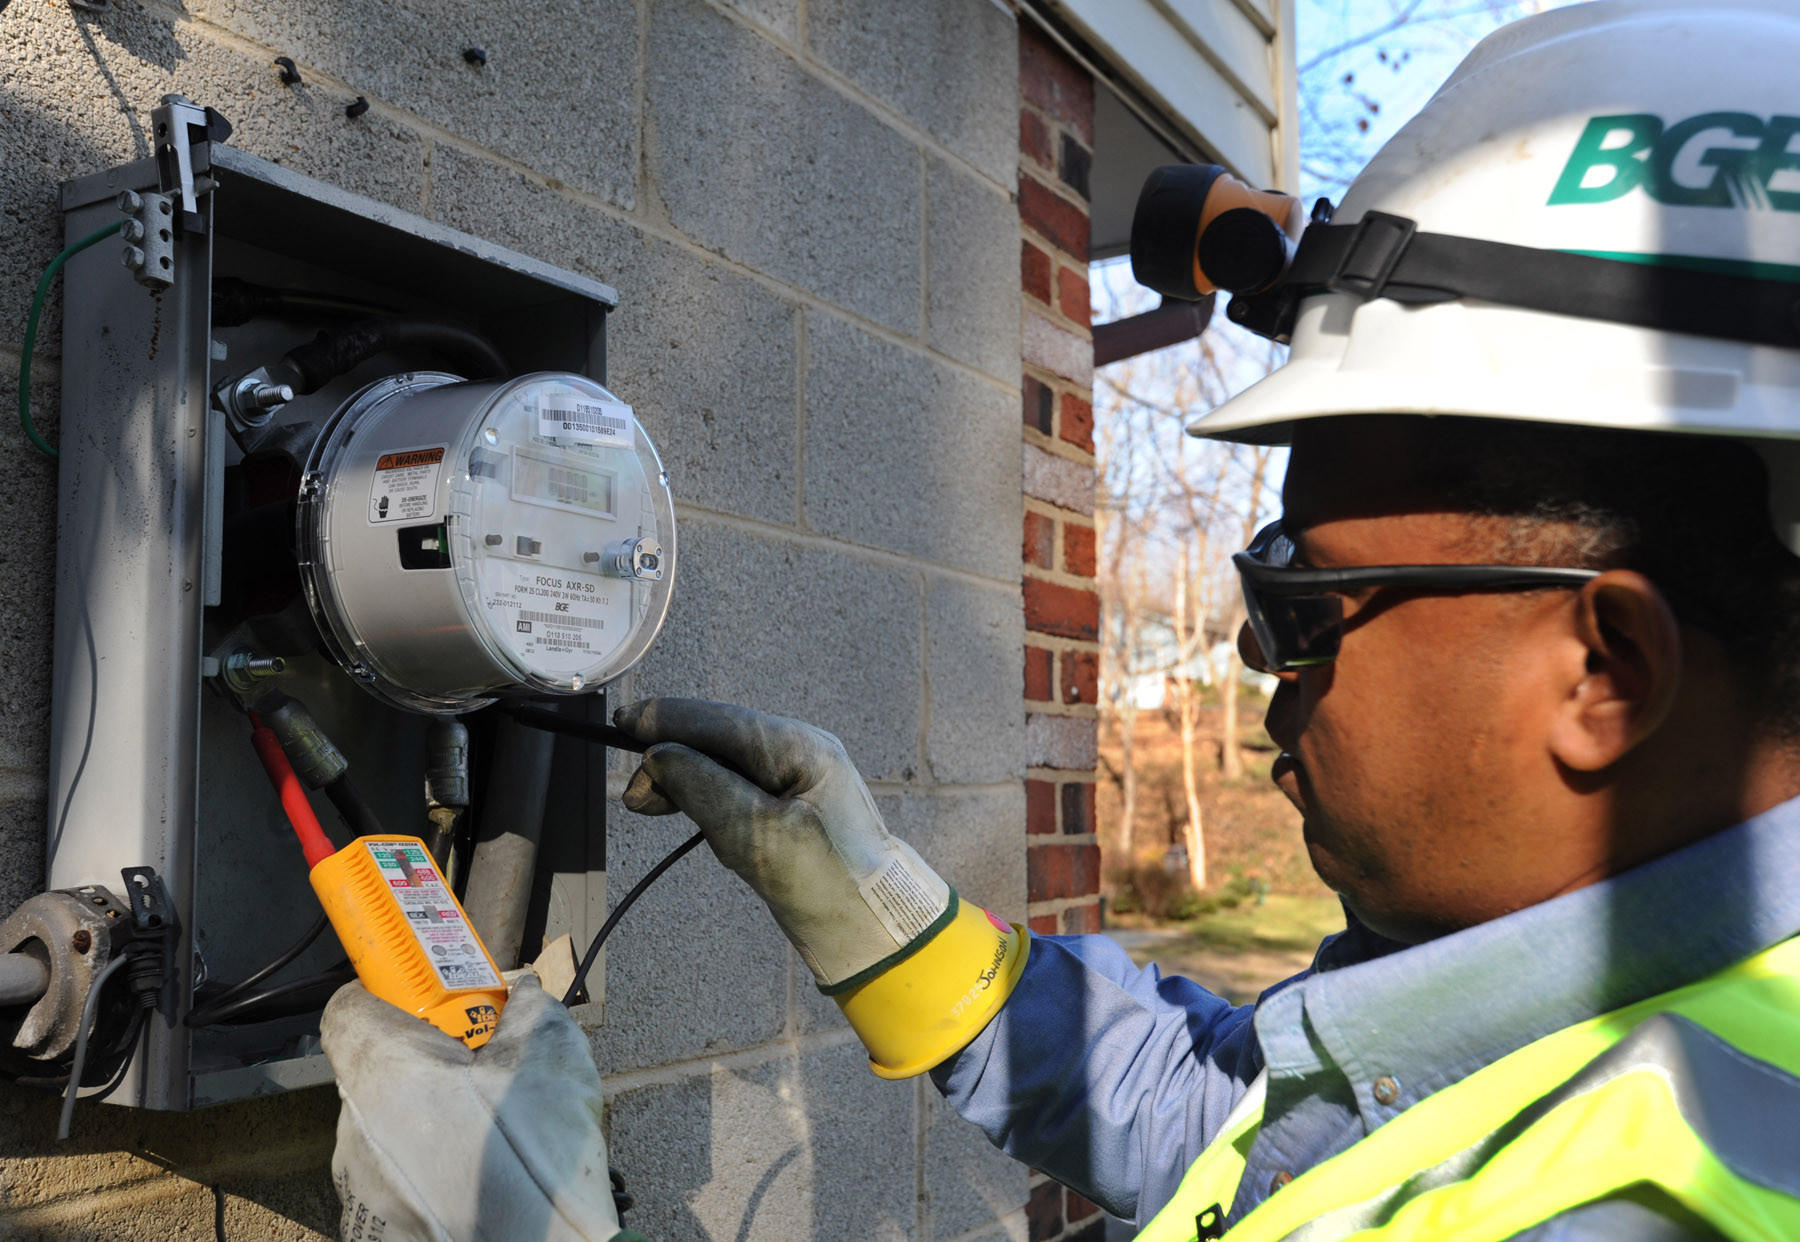 Rudolph Johnson III, a BGE meter crew leader, tests the voltage of a new AMI (Advanced Meter Infrastructure) smart meter he just installed on a home on Hoot Owl Rd.